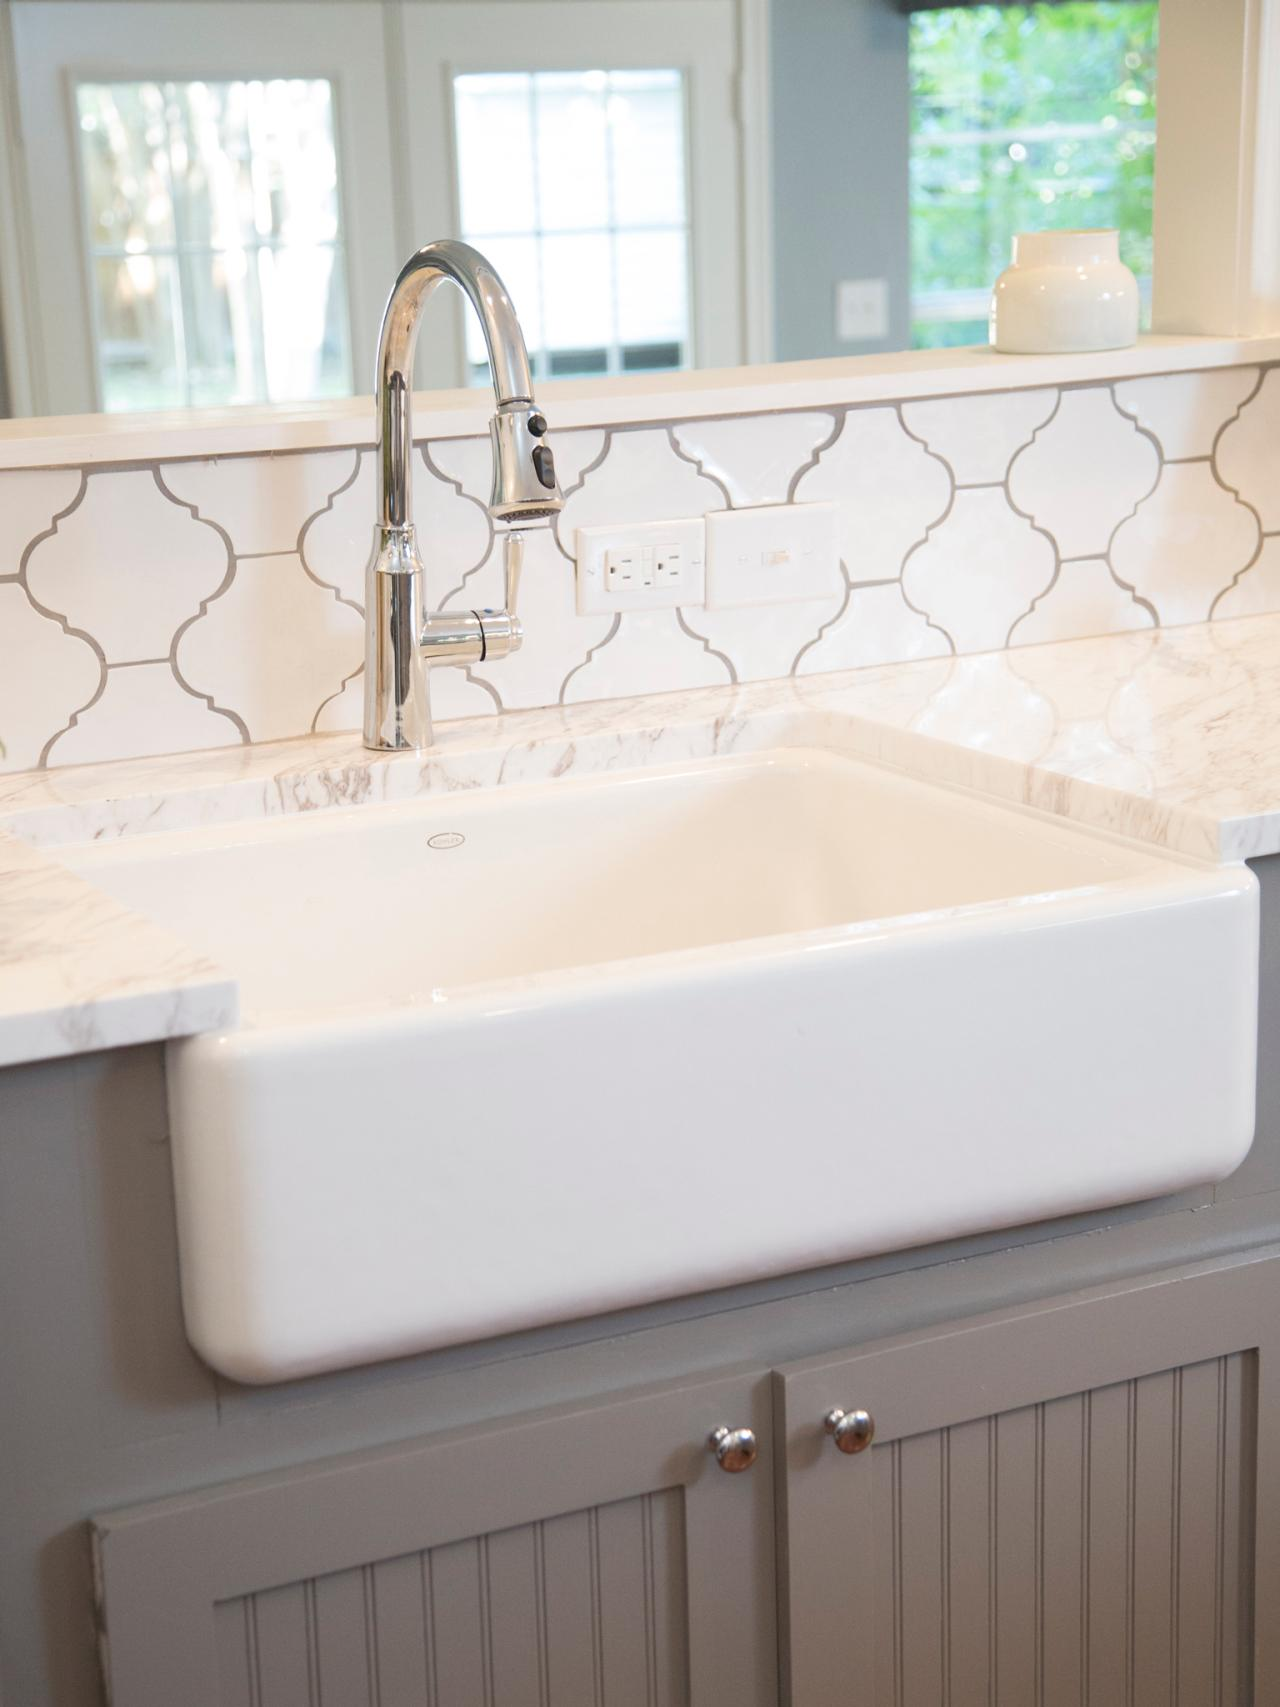 30 cool ideas and pictures of farmhouse bathroom tile 2019 on Farmhouse Bathroom Tile  id=72997